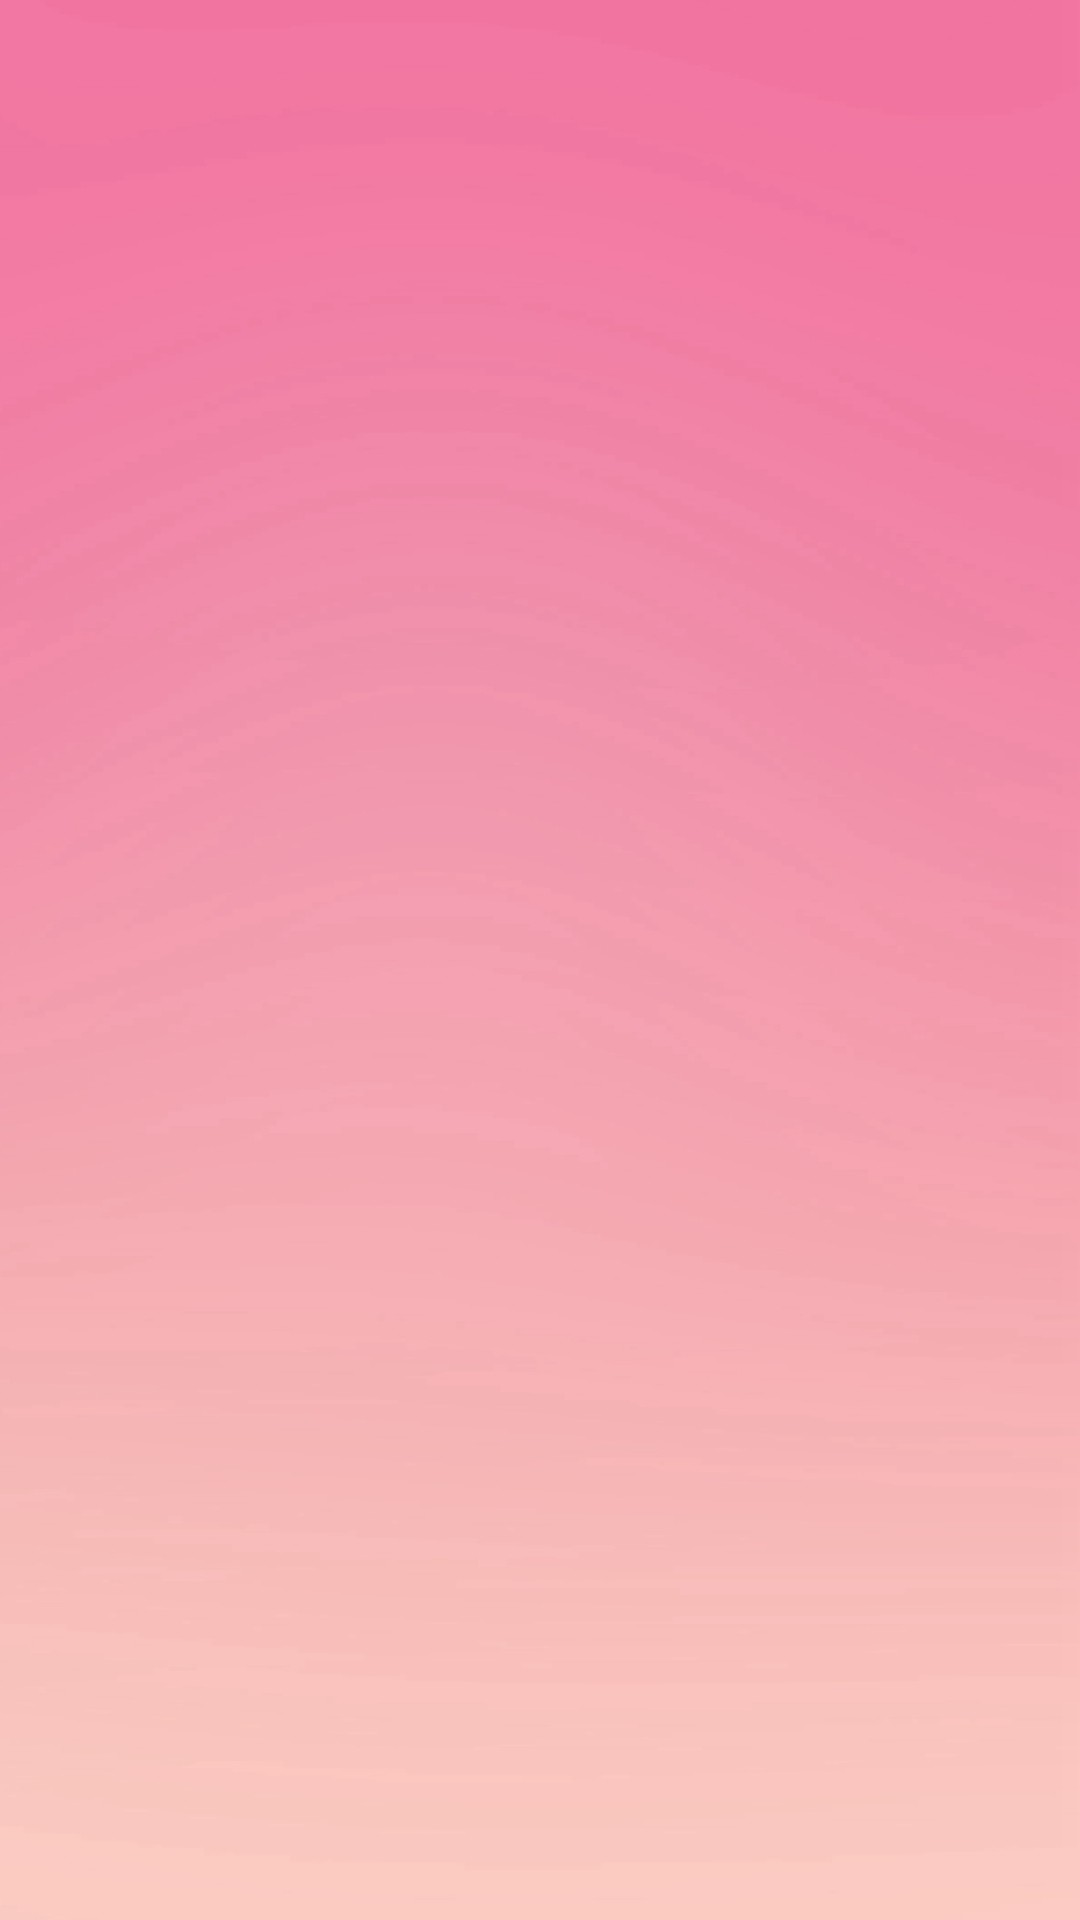 1080x1920 Pink Yellow Gradation Blur iPhone 6 wallpaper